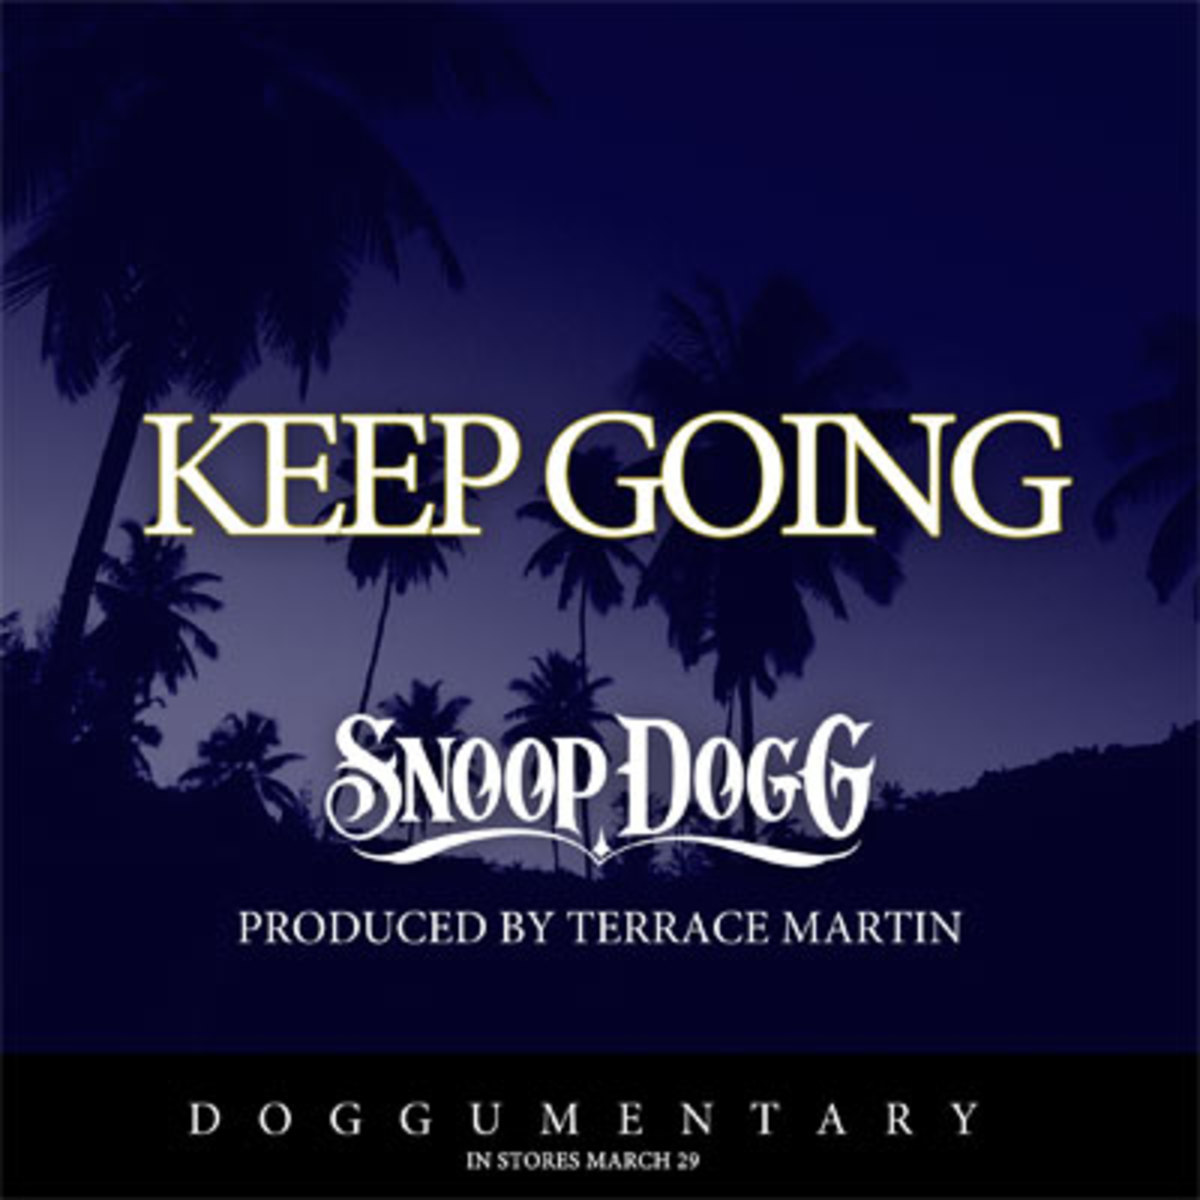 snoopdogg-keepgoing.jpg